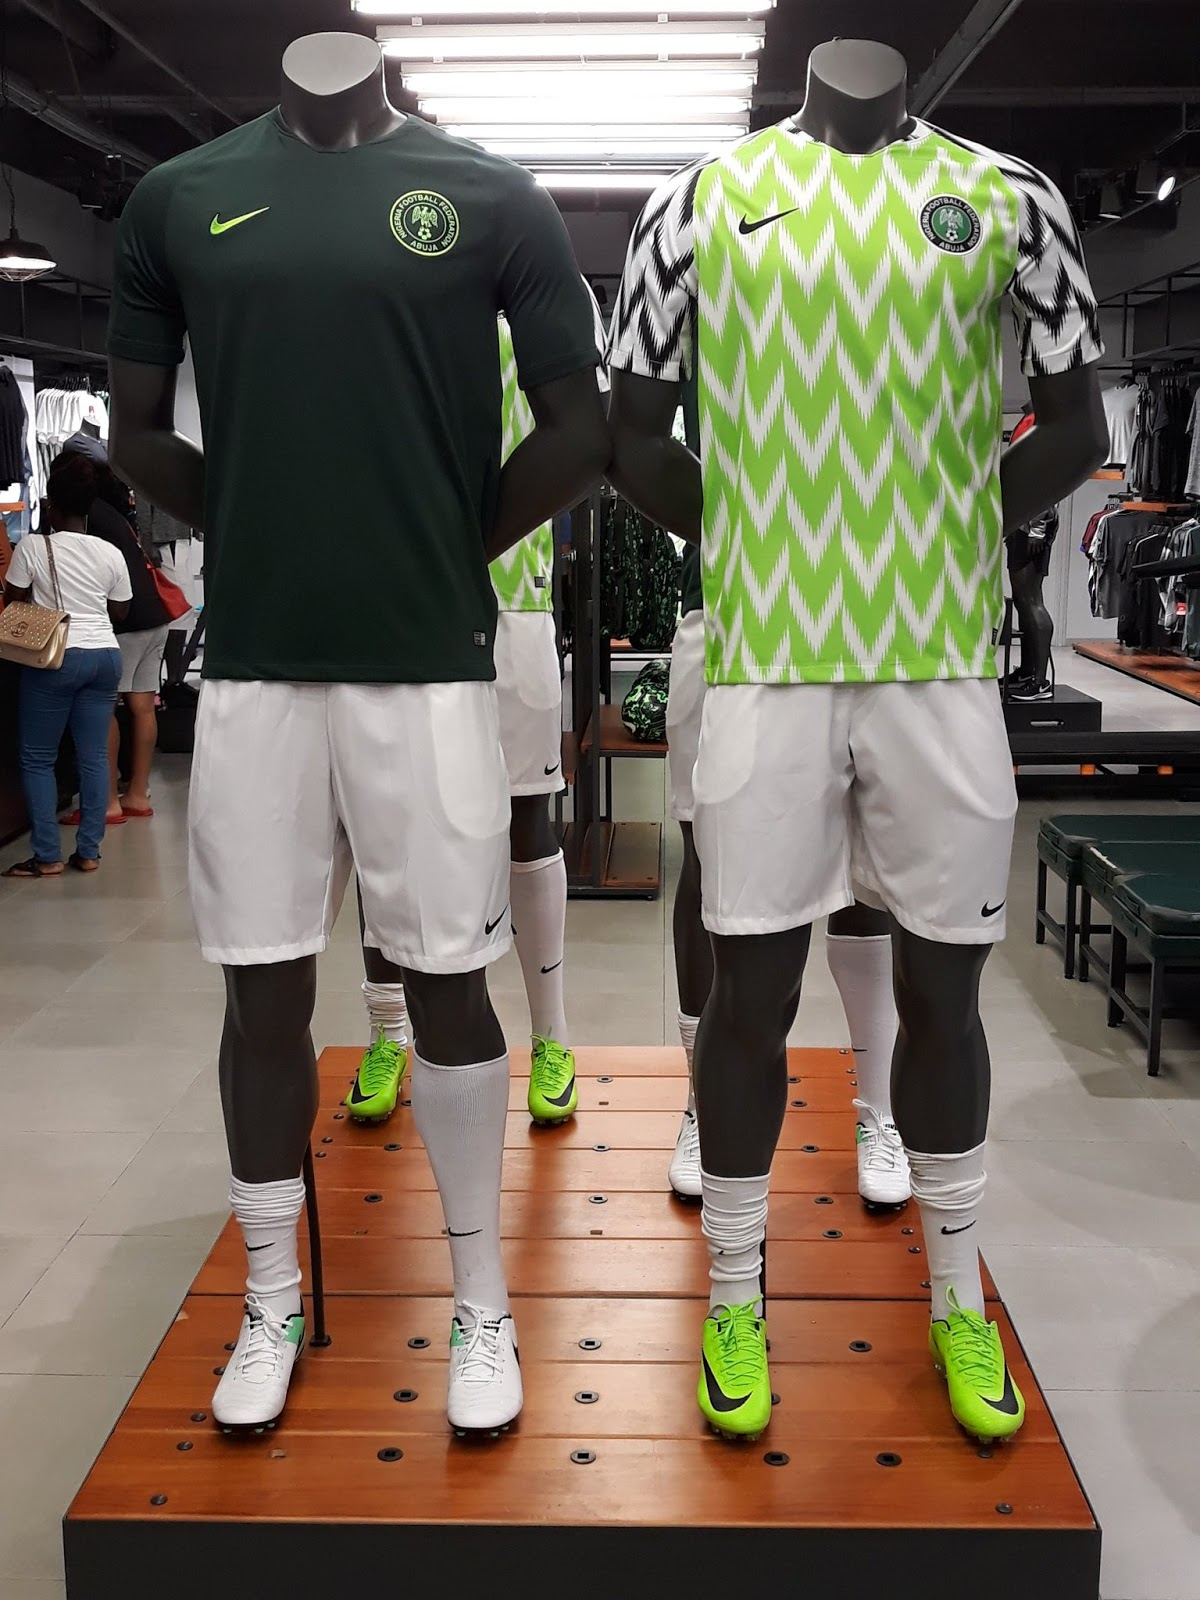 Breaking: Super Eagles official World Cup Jersey sold out on launch day